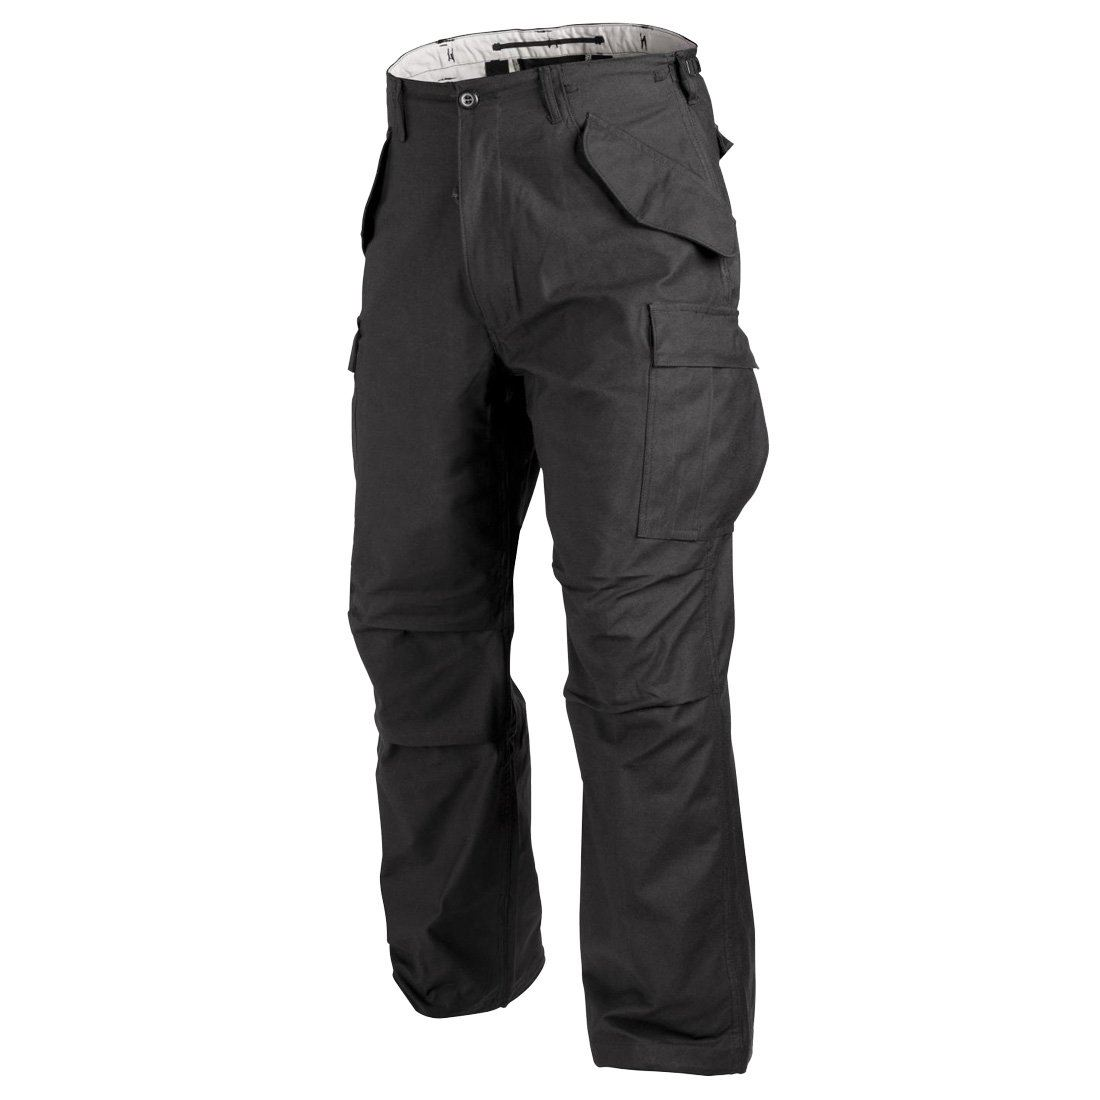 MFH TACTICAL MENS MISSION COMBAT TROUSERS NYCO RIPSTOP POLICE PATROL PANTS BLACK